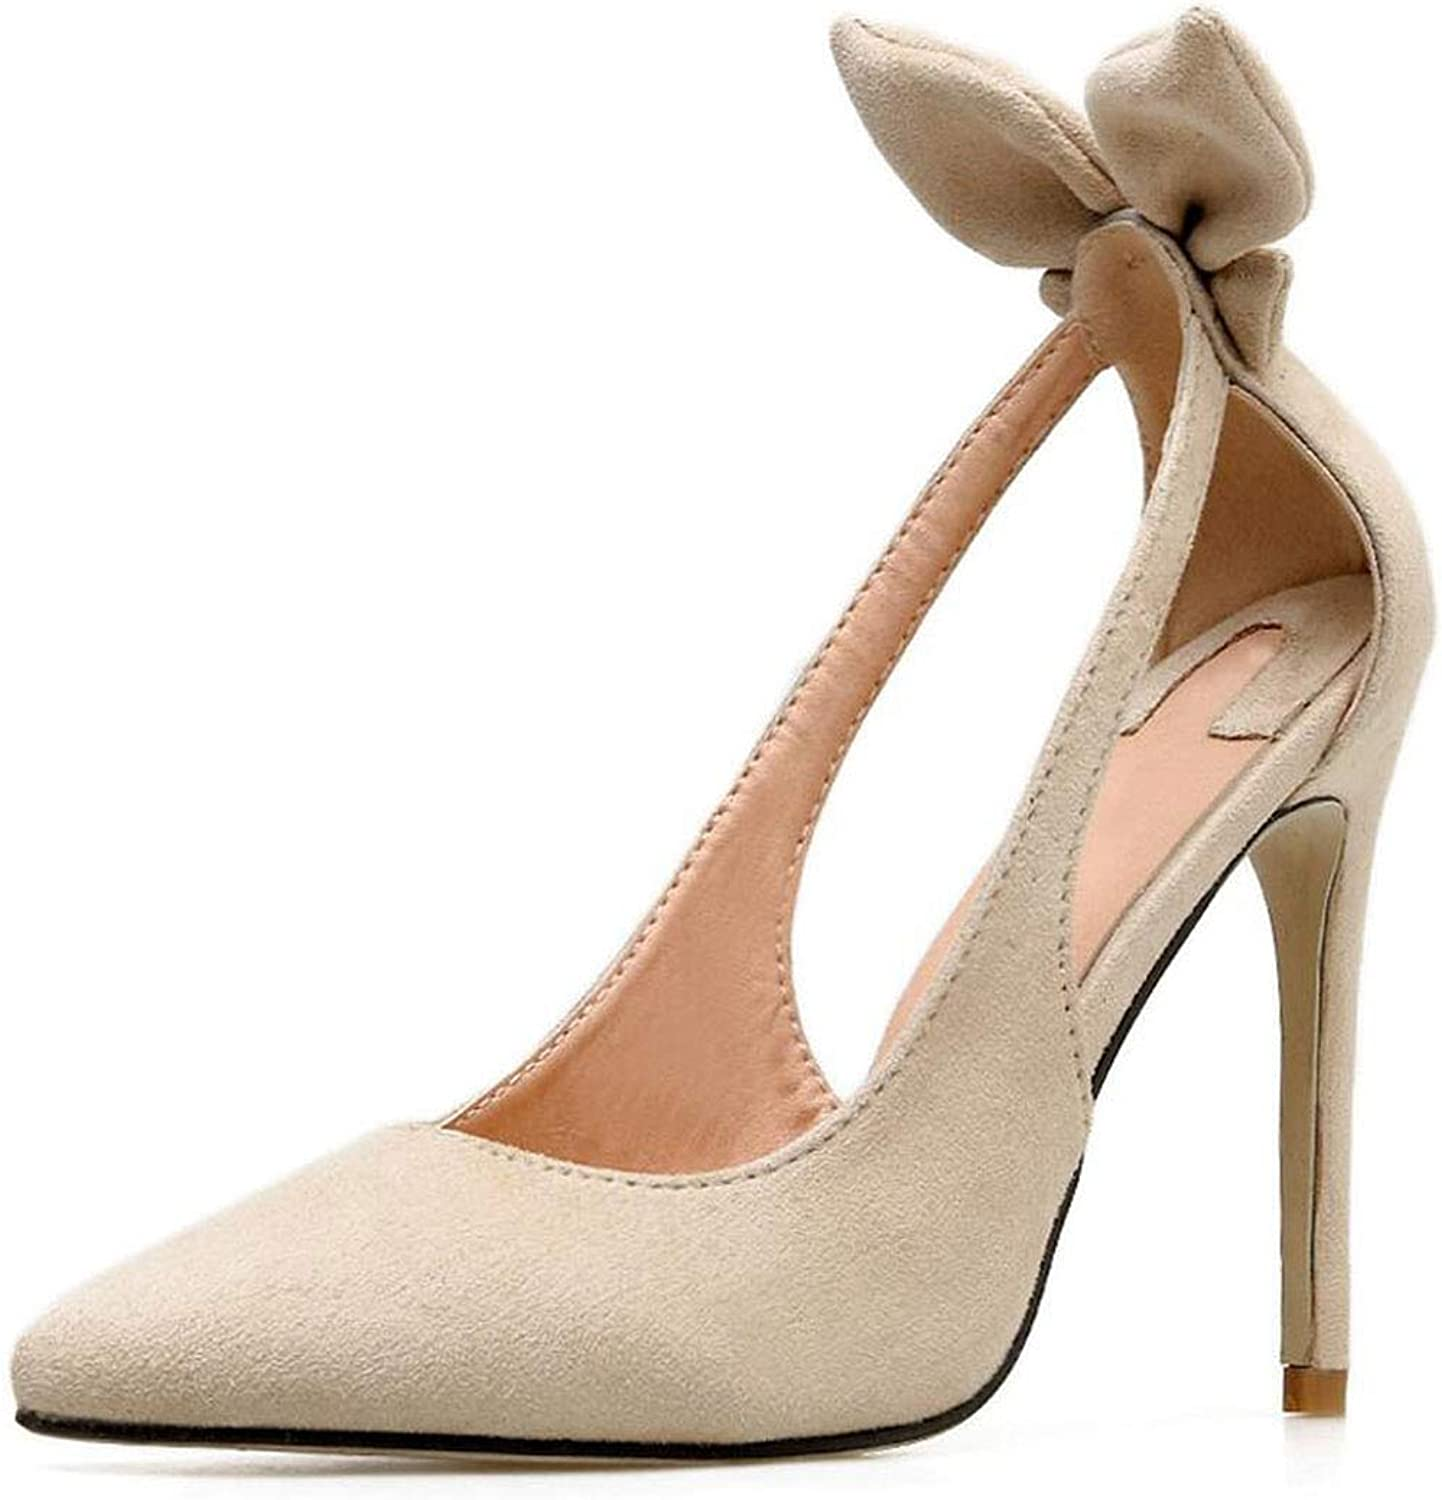 2019 High Heels Sexy shoes Women Pointed Toe 11Cm Thin Heel Party Fashion Ladies Party Dress shoes Size 35-40